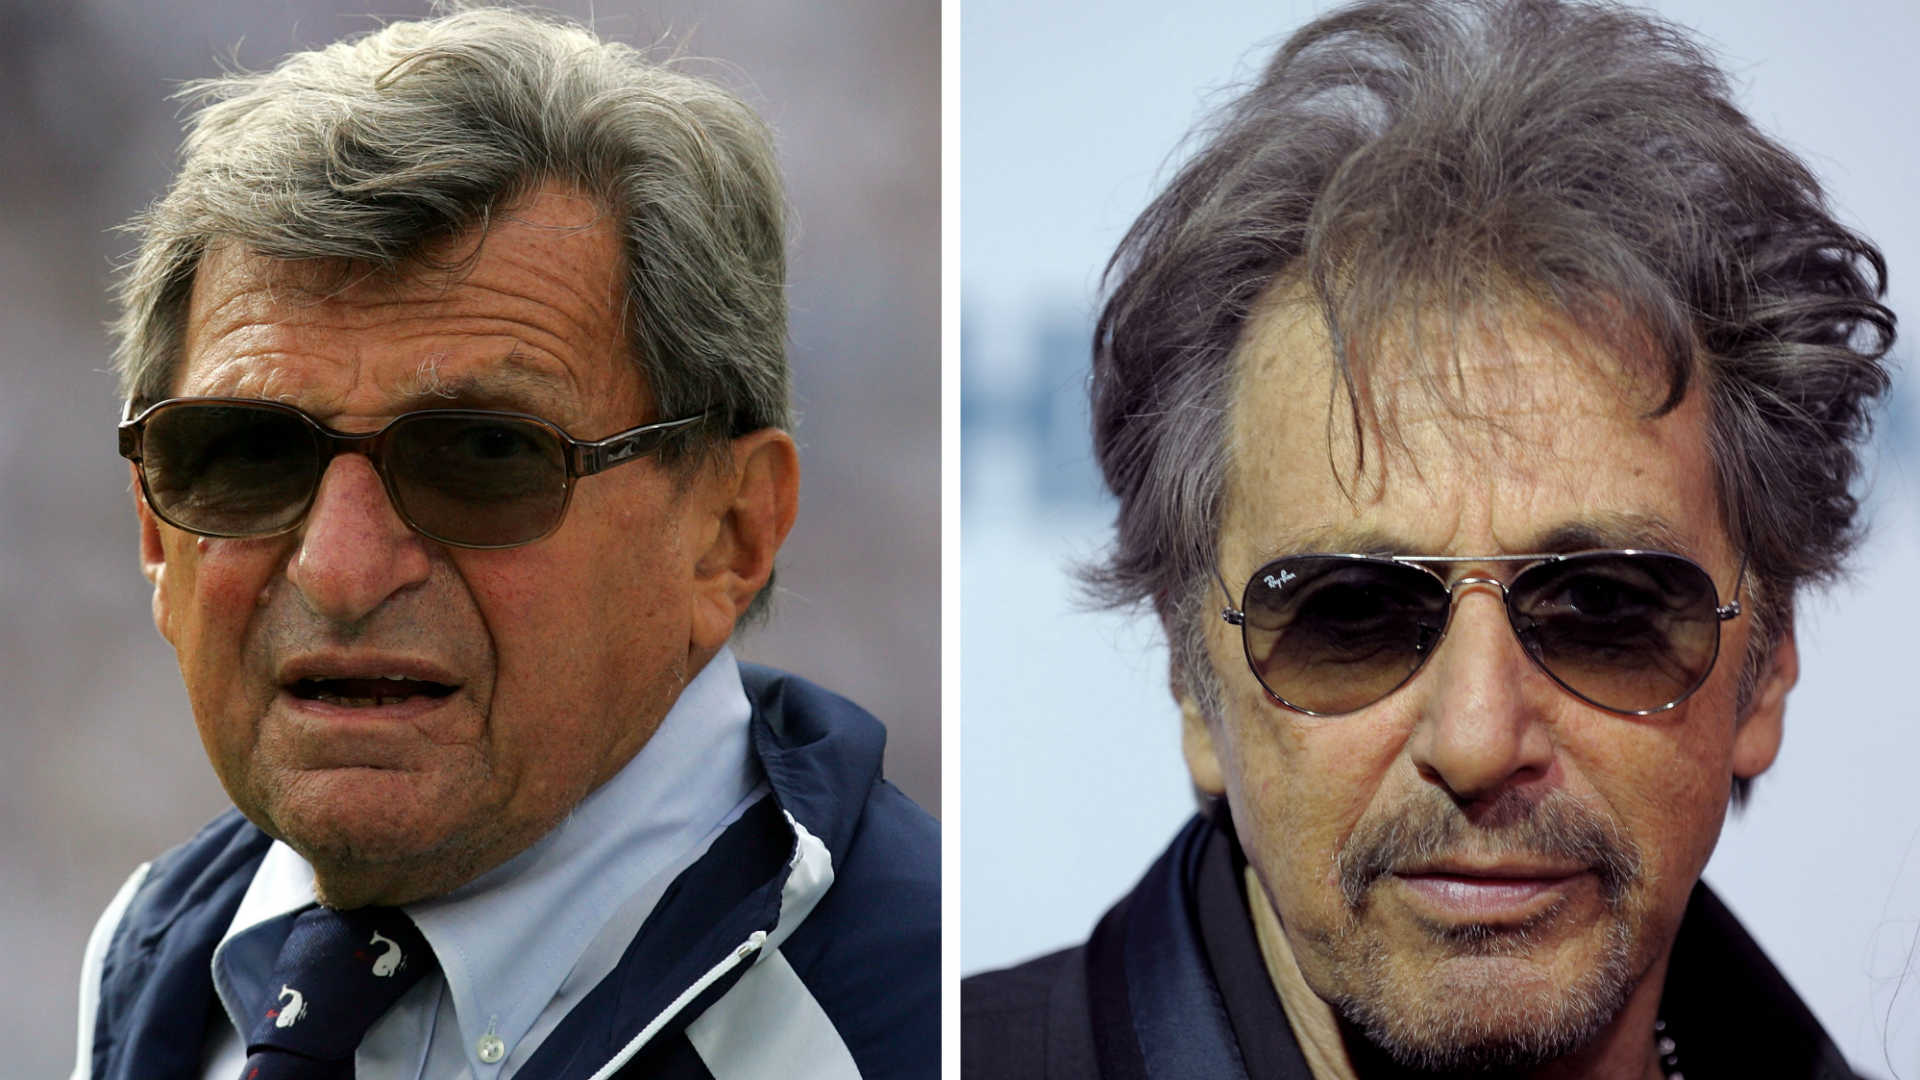 Another report has Al Pacino playing film version of Joe Paterno